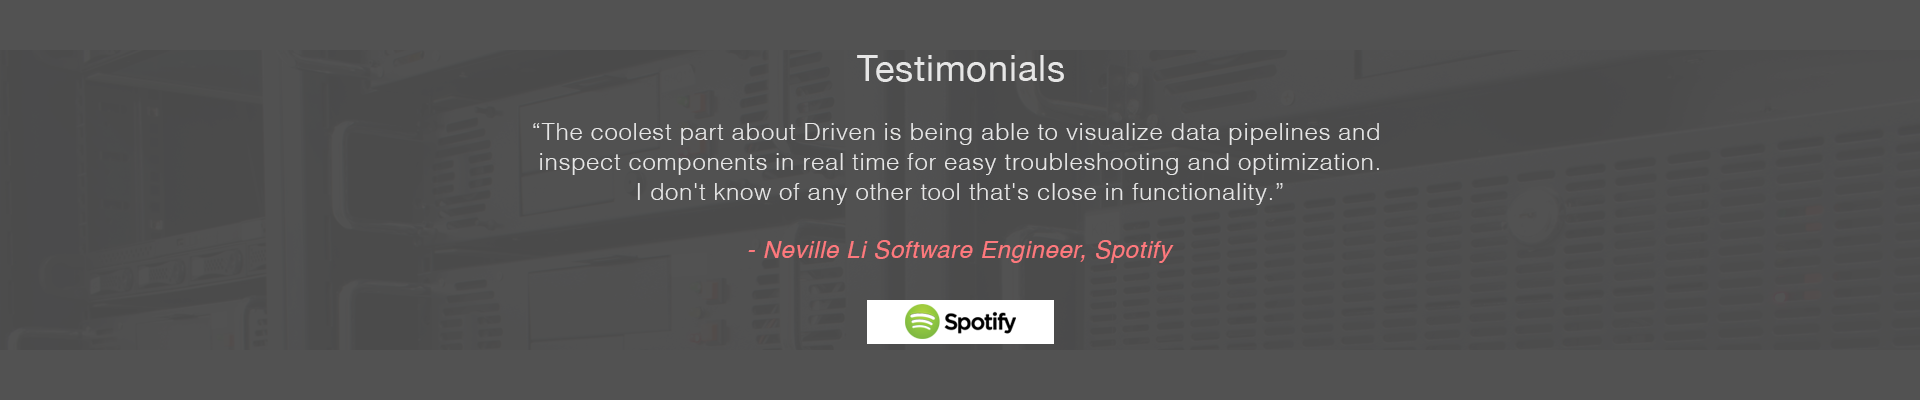 Customer Testimonial - Spotify